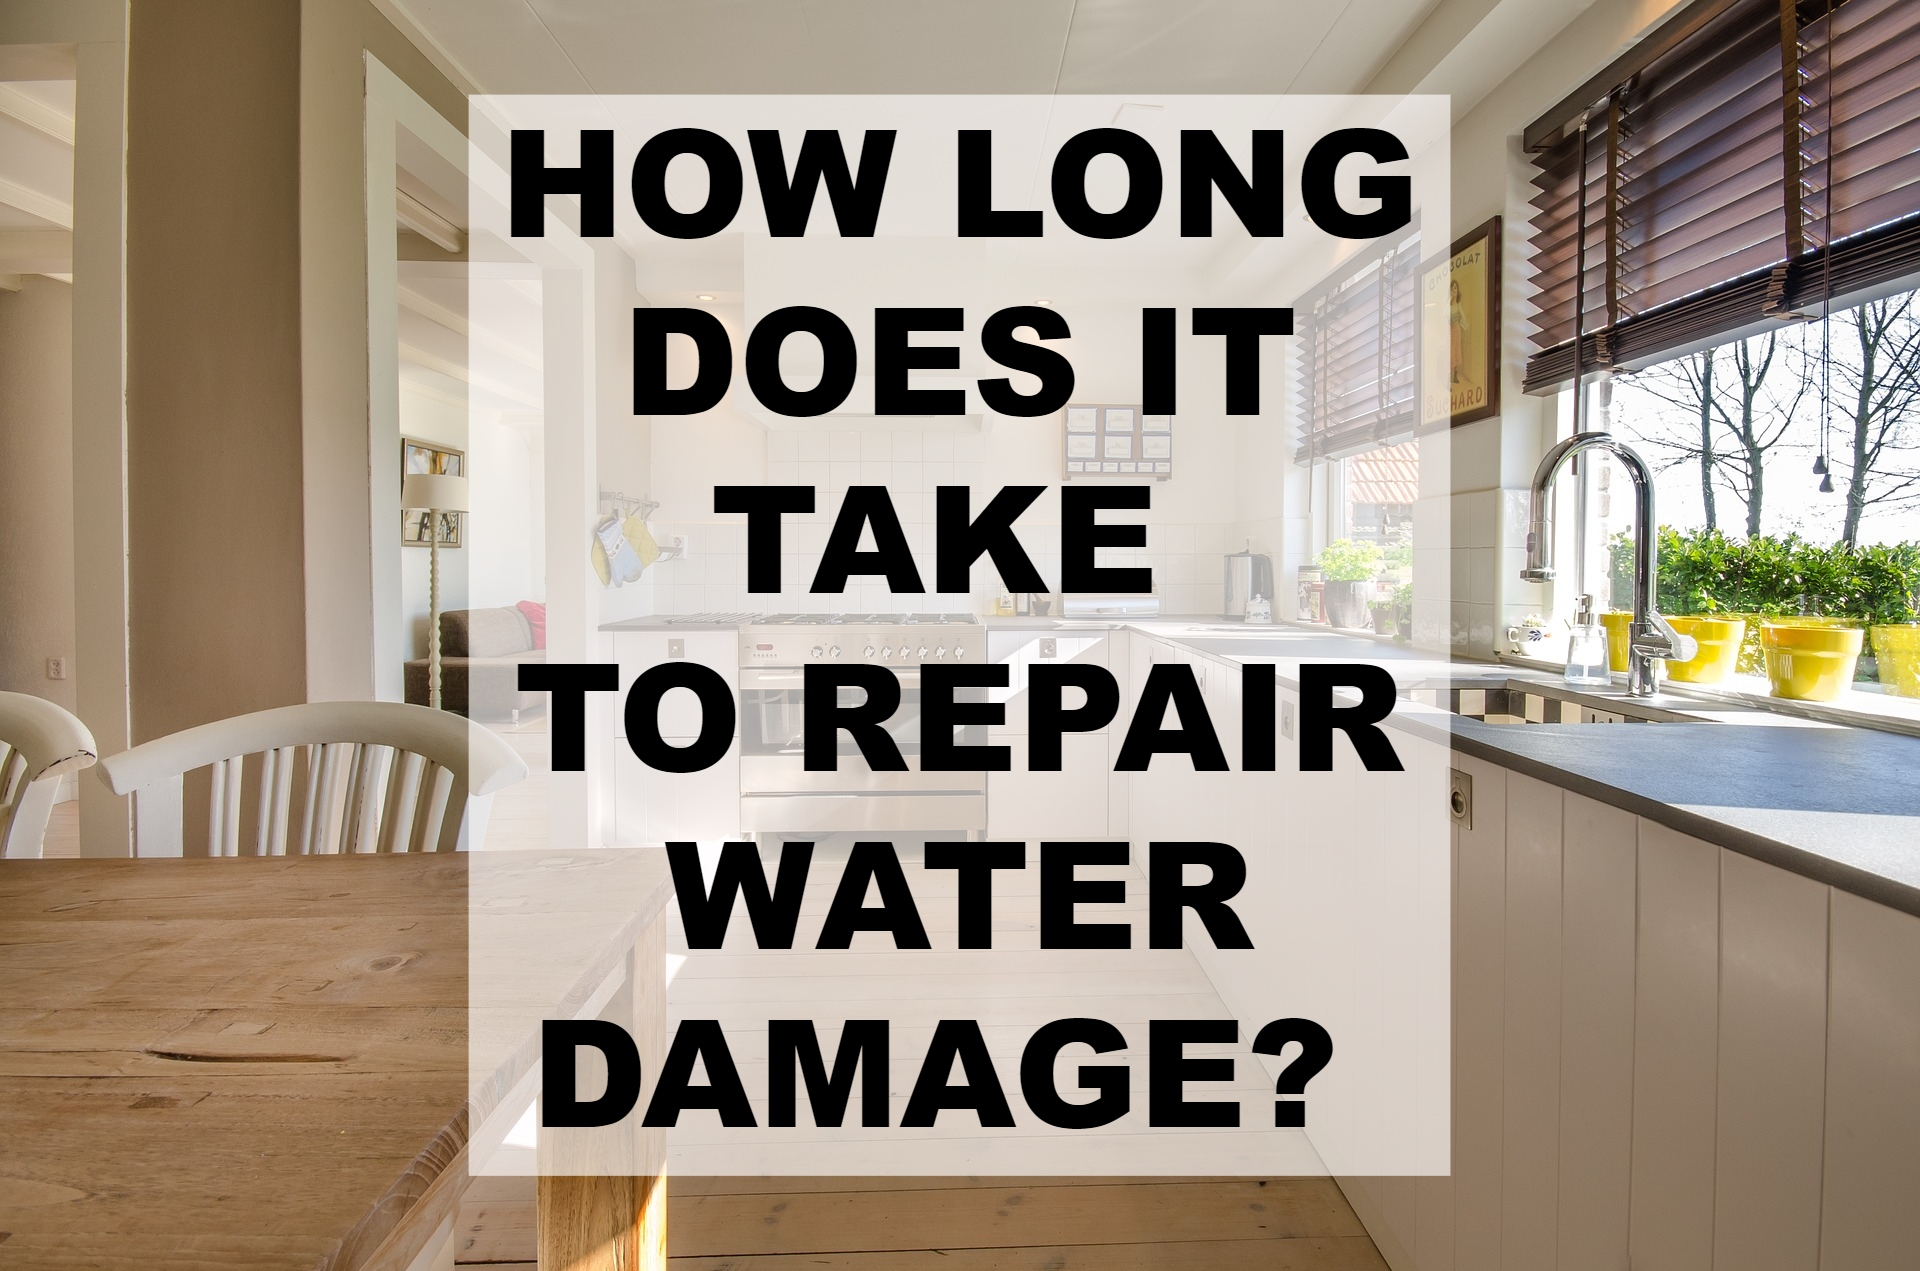 restoration water damage experts